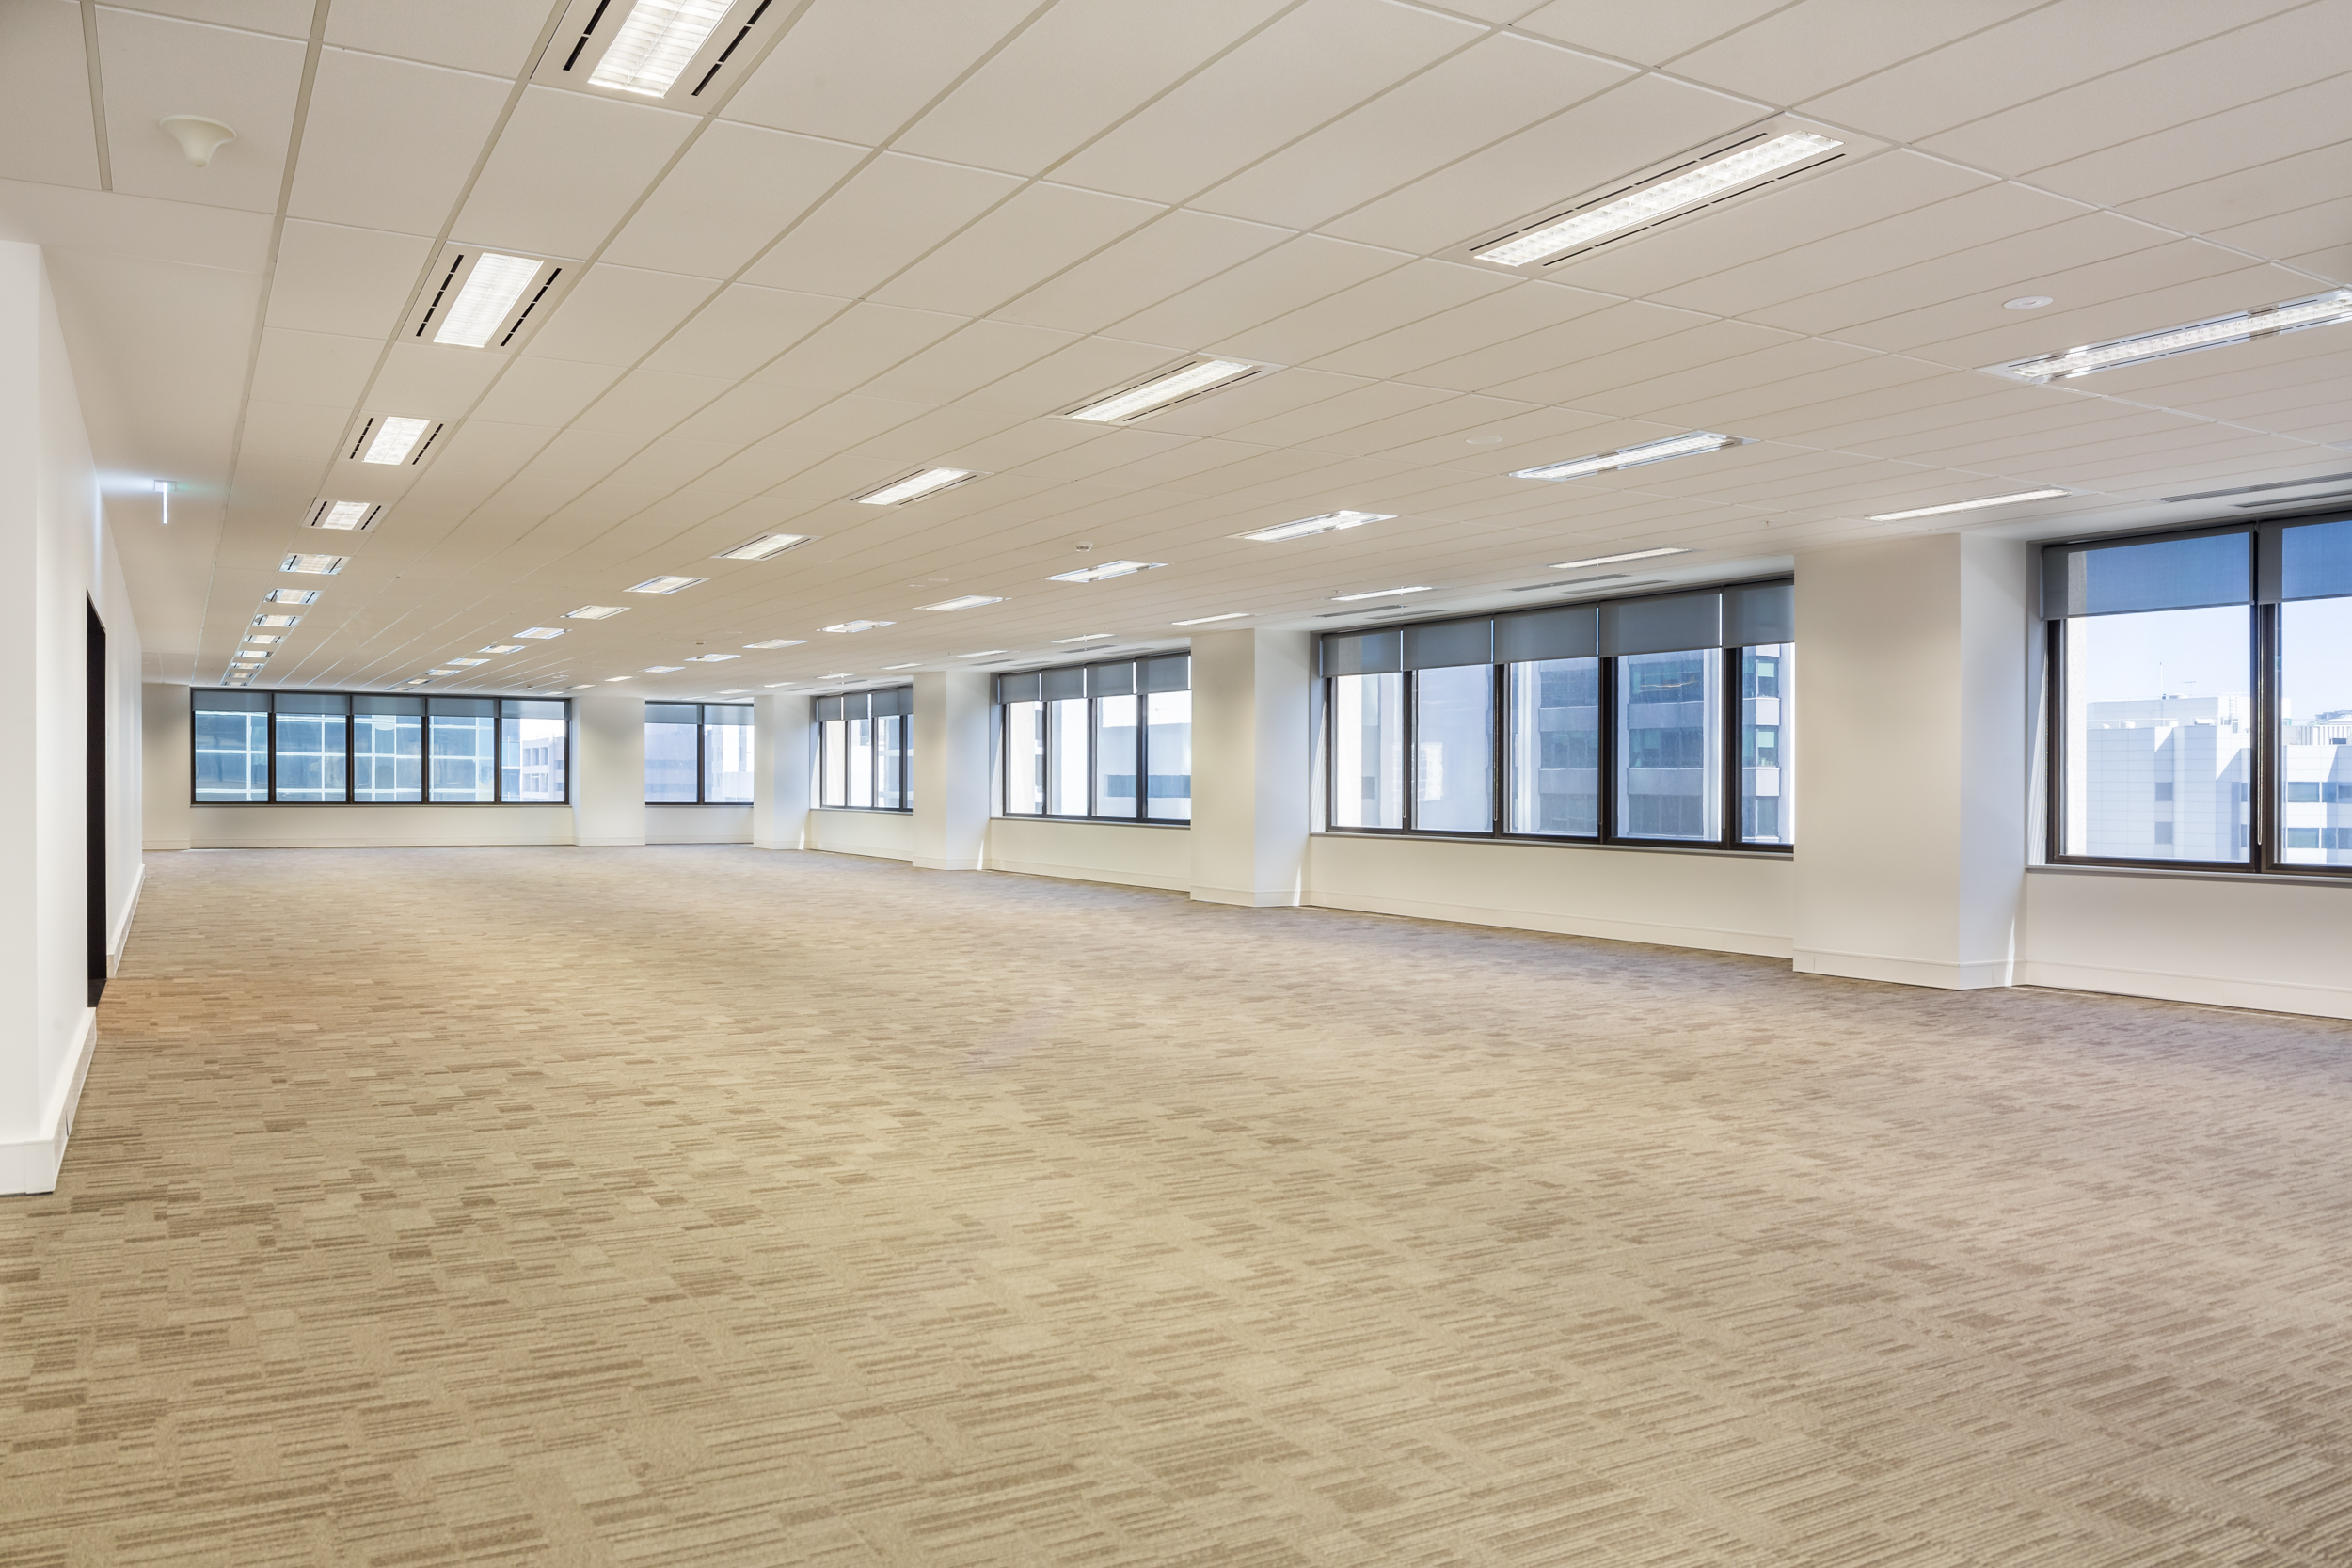 Cdi group for 100 st georges terrace perth wa 6000 australia